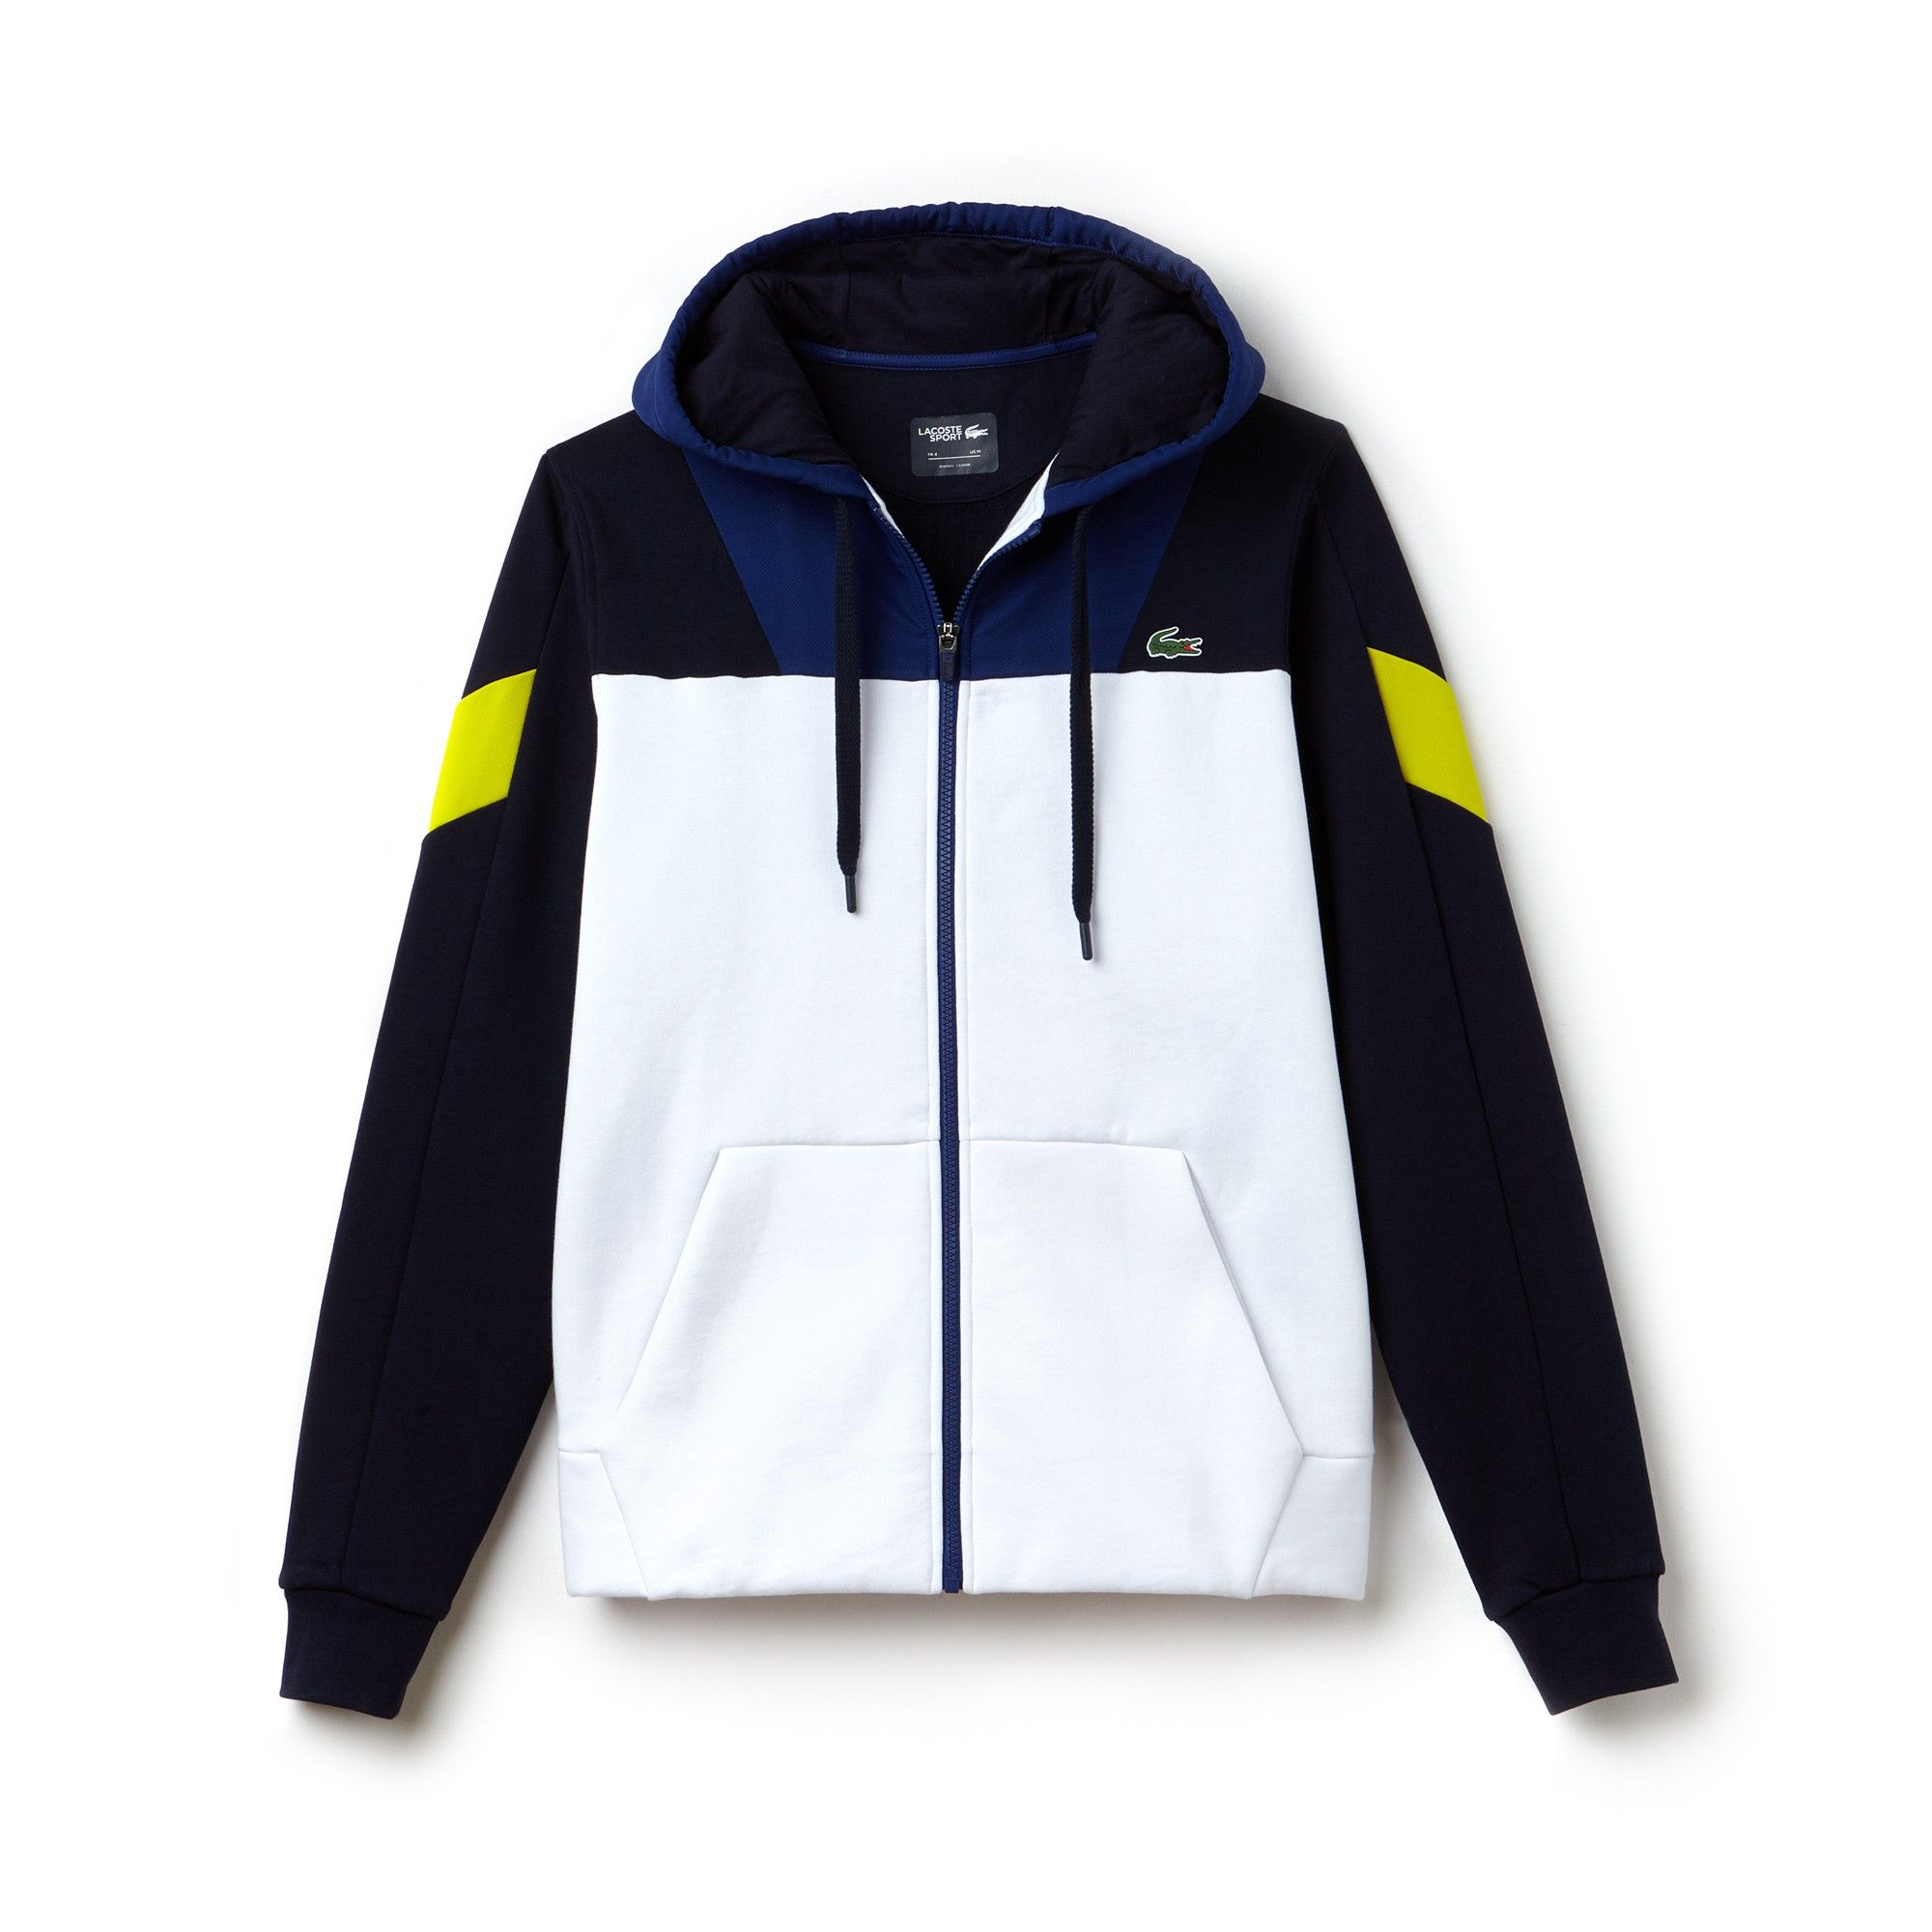 4dce0dd6e7 Lacoste Men's Sport Tennis Colorblock Bi-Material Zip Sweatshirt -  White/Navy Blue-Ocean-Sod XL